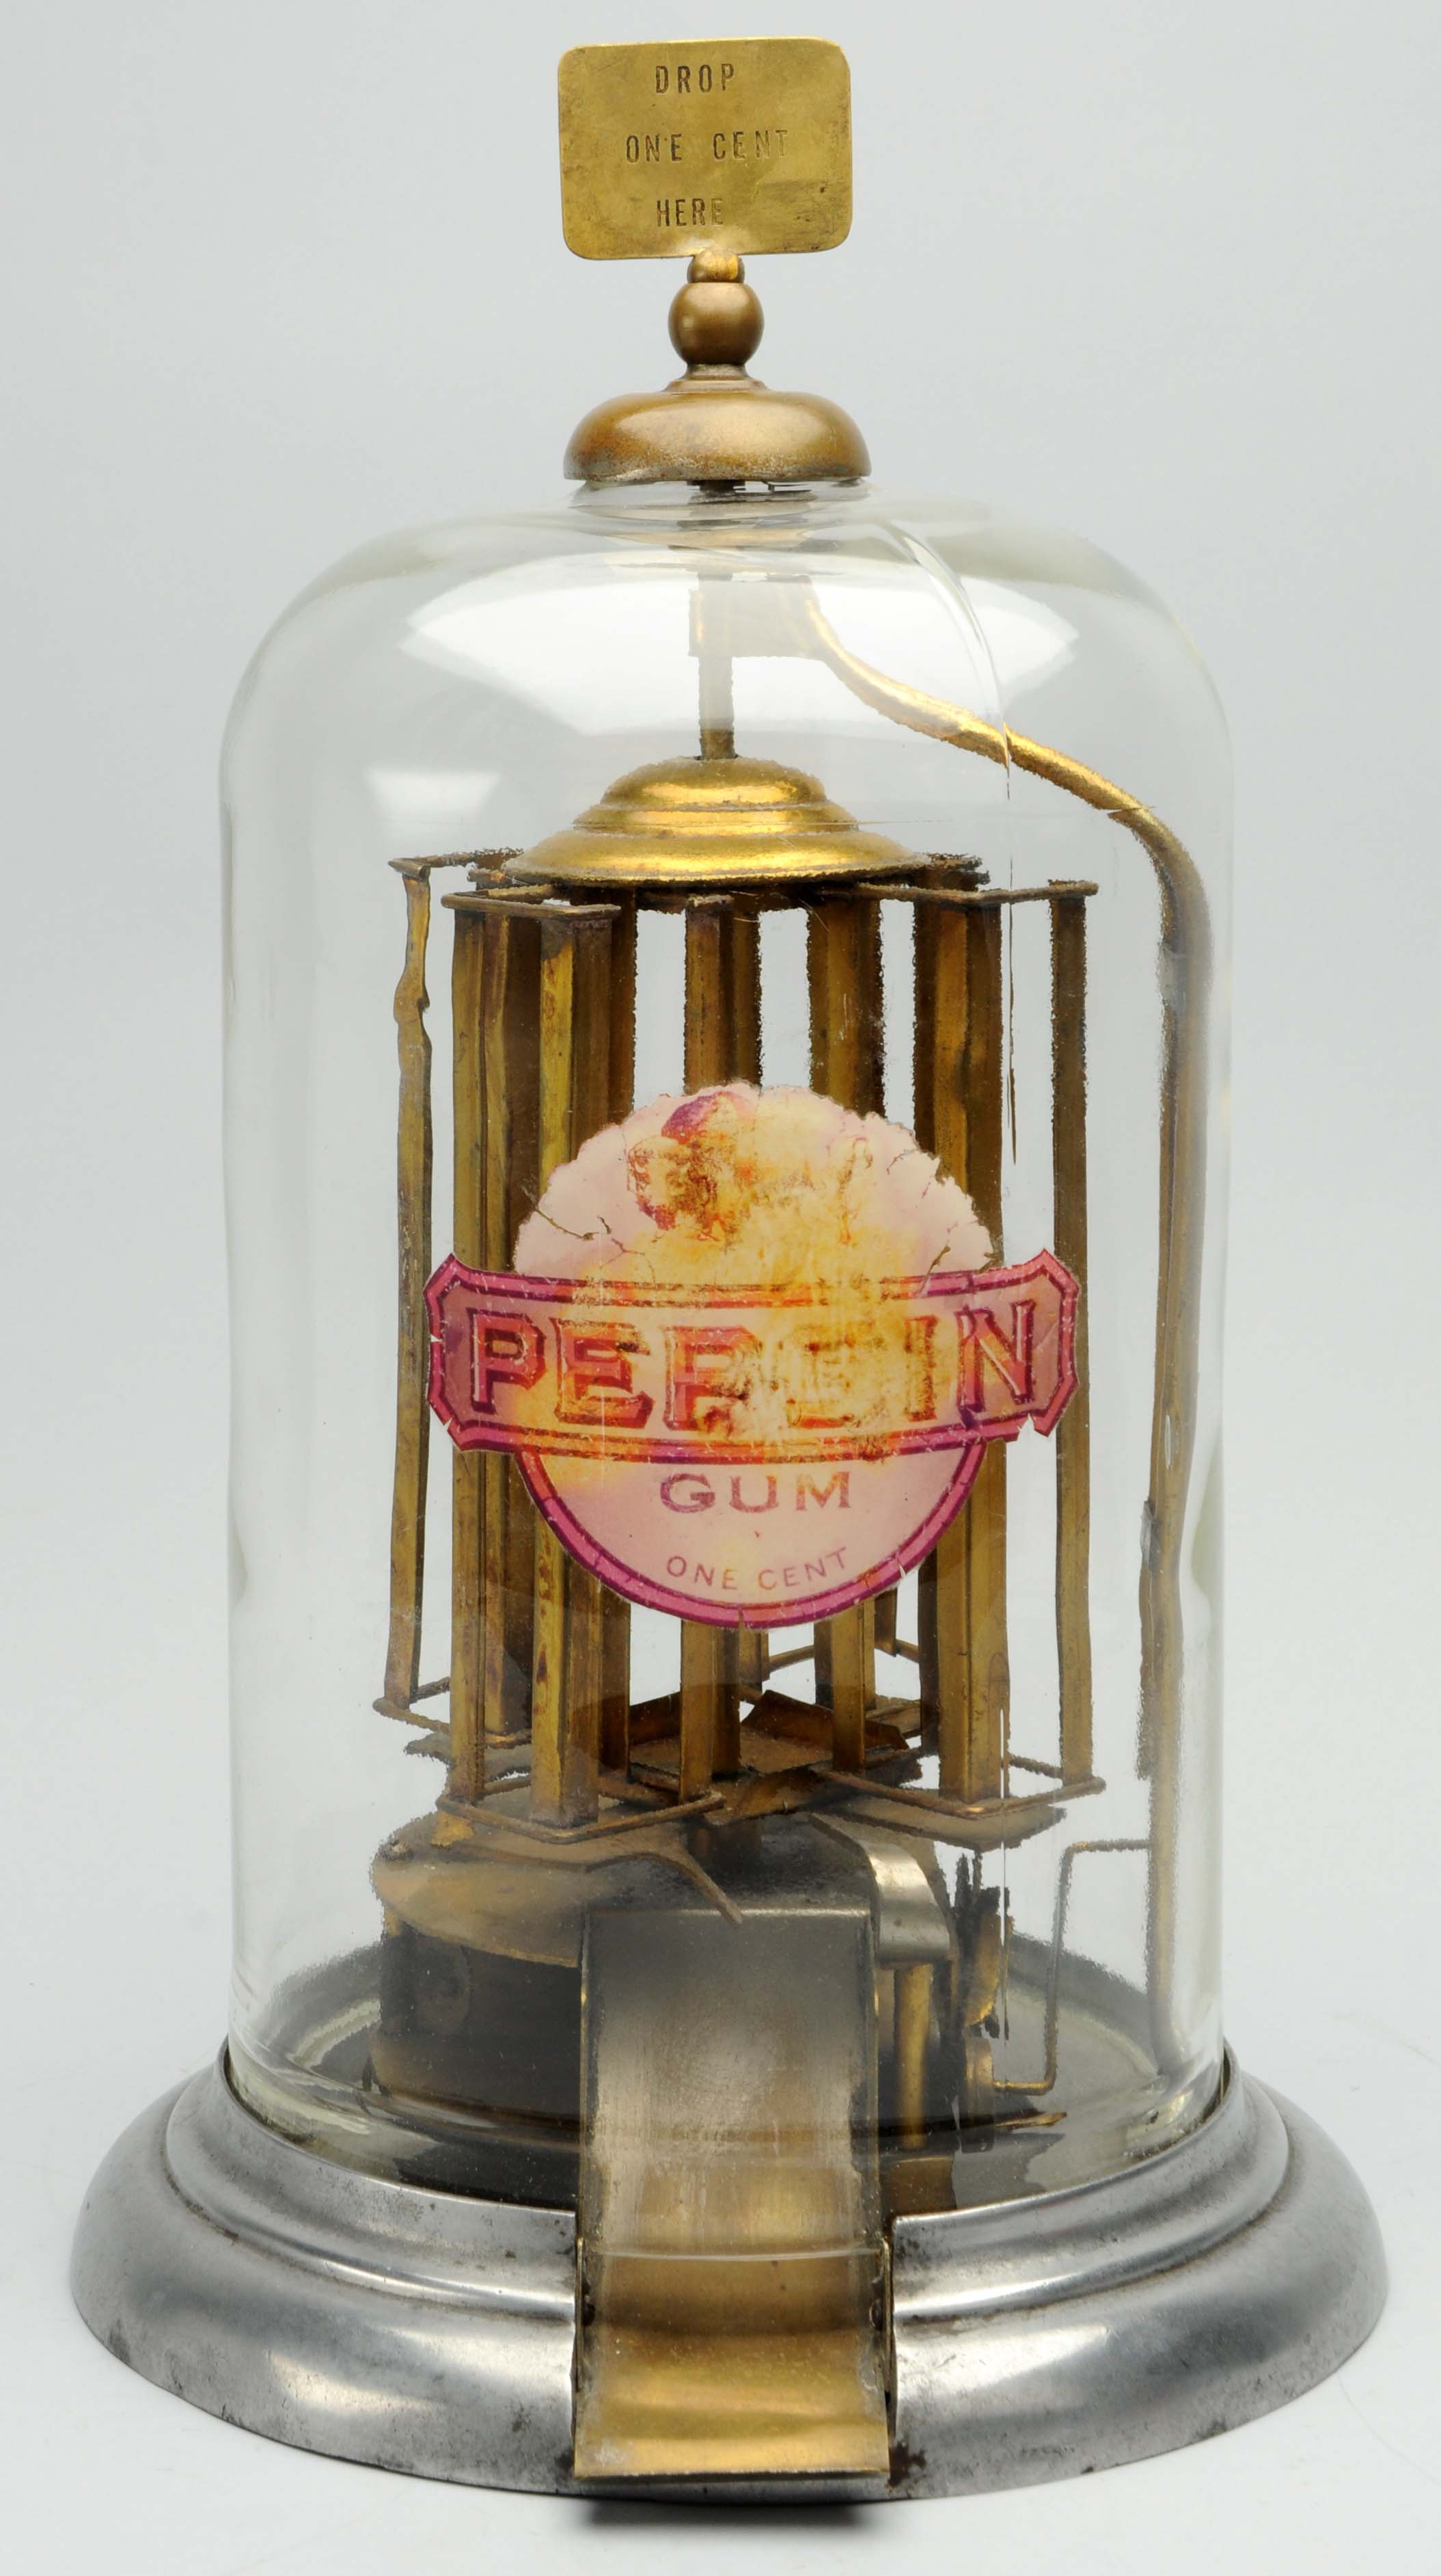 Buffalo Pepsin Gum 1-cent vending machine with brass marquee. Est. $5,000-$8,000. Morphy Auctions image.